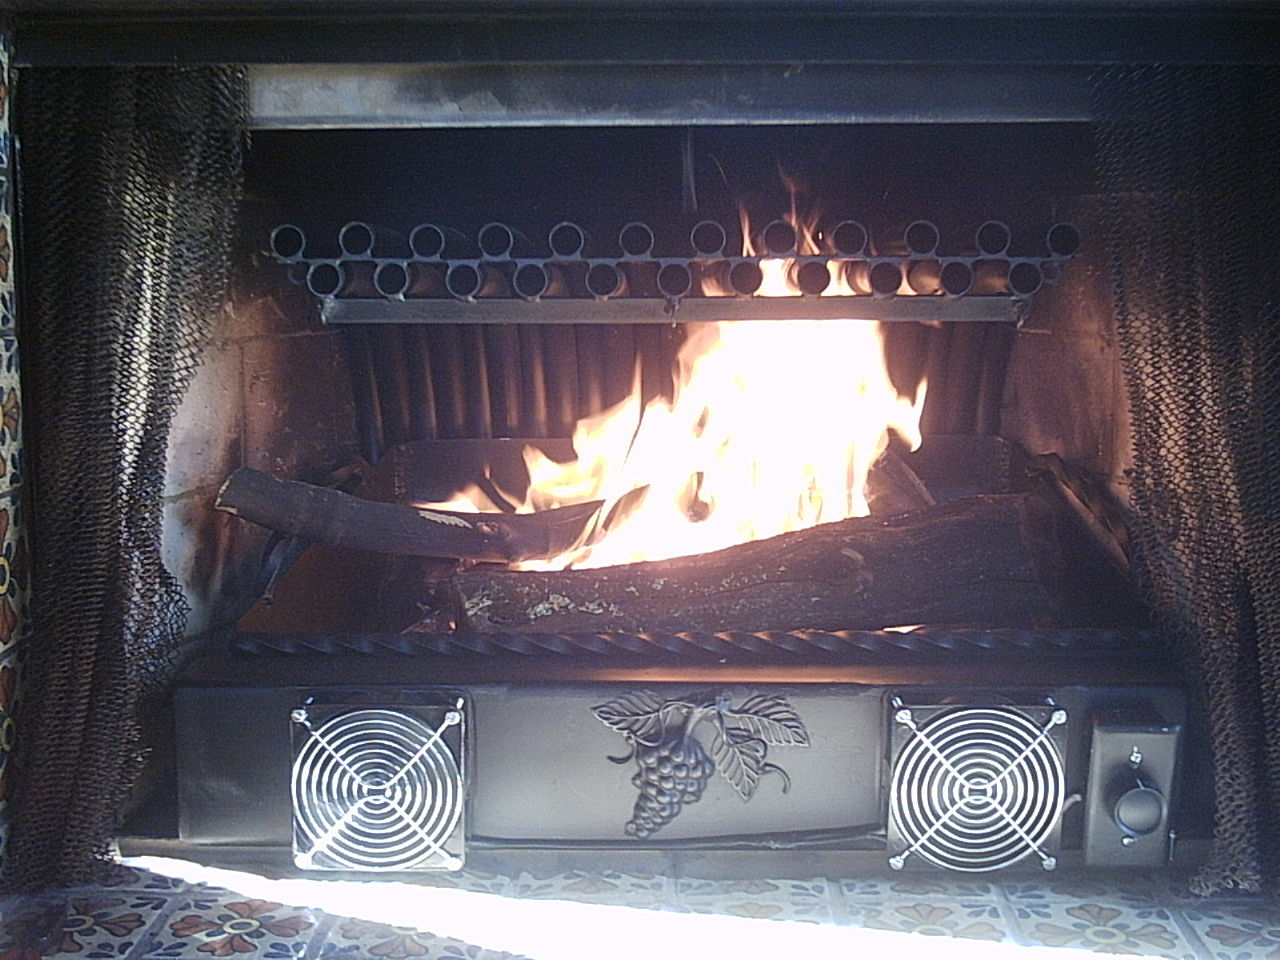 Fireplace Grate Blowers Wood Burning File 2 Row Grate Heater With Ash Tray Jpg Wikimedia Commons